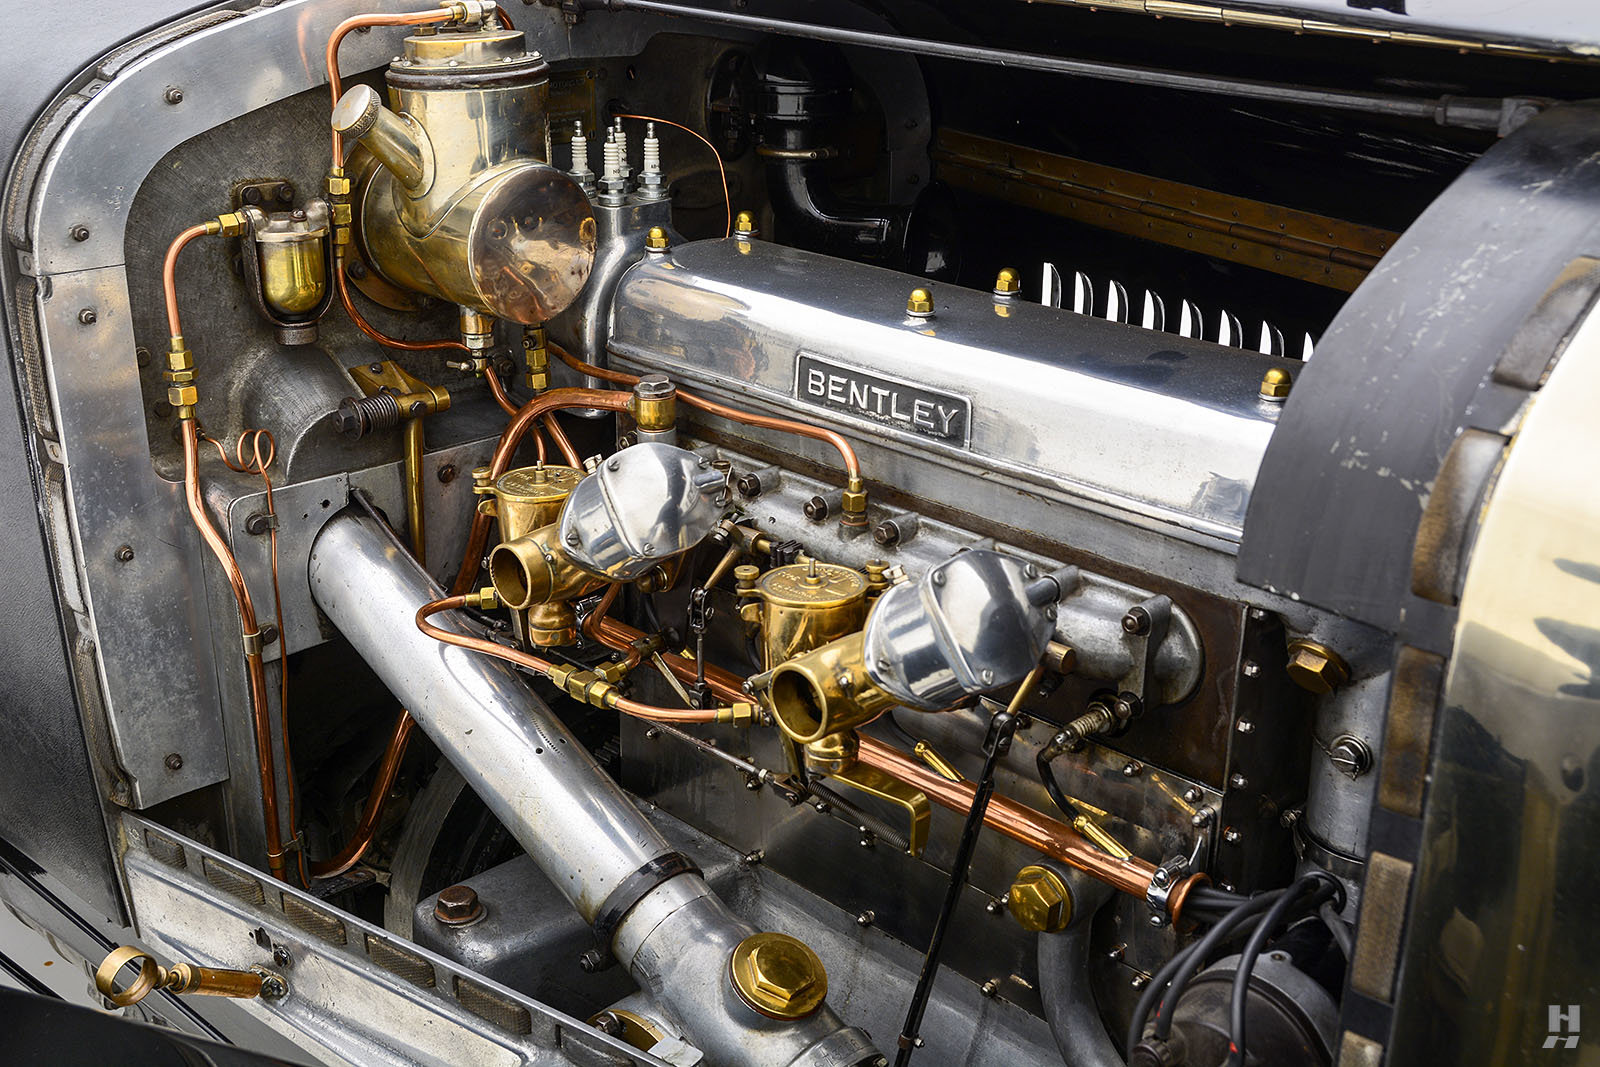 1928 BENTLEY 4.5 LITRE SPORTS TOURER For Sale (picture 3 of 6)